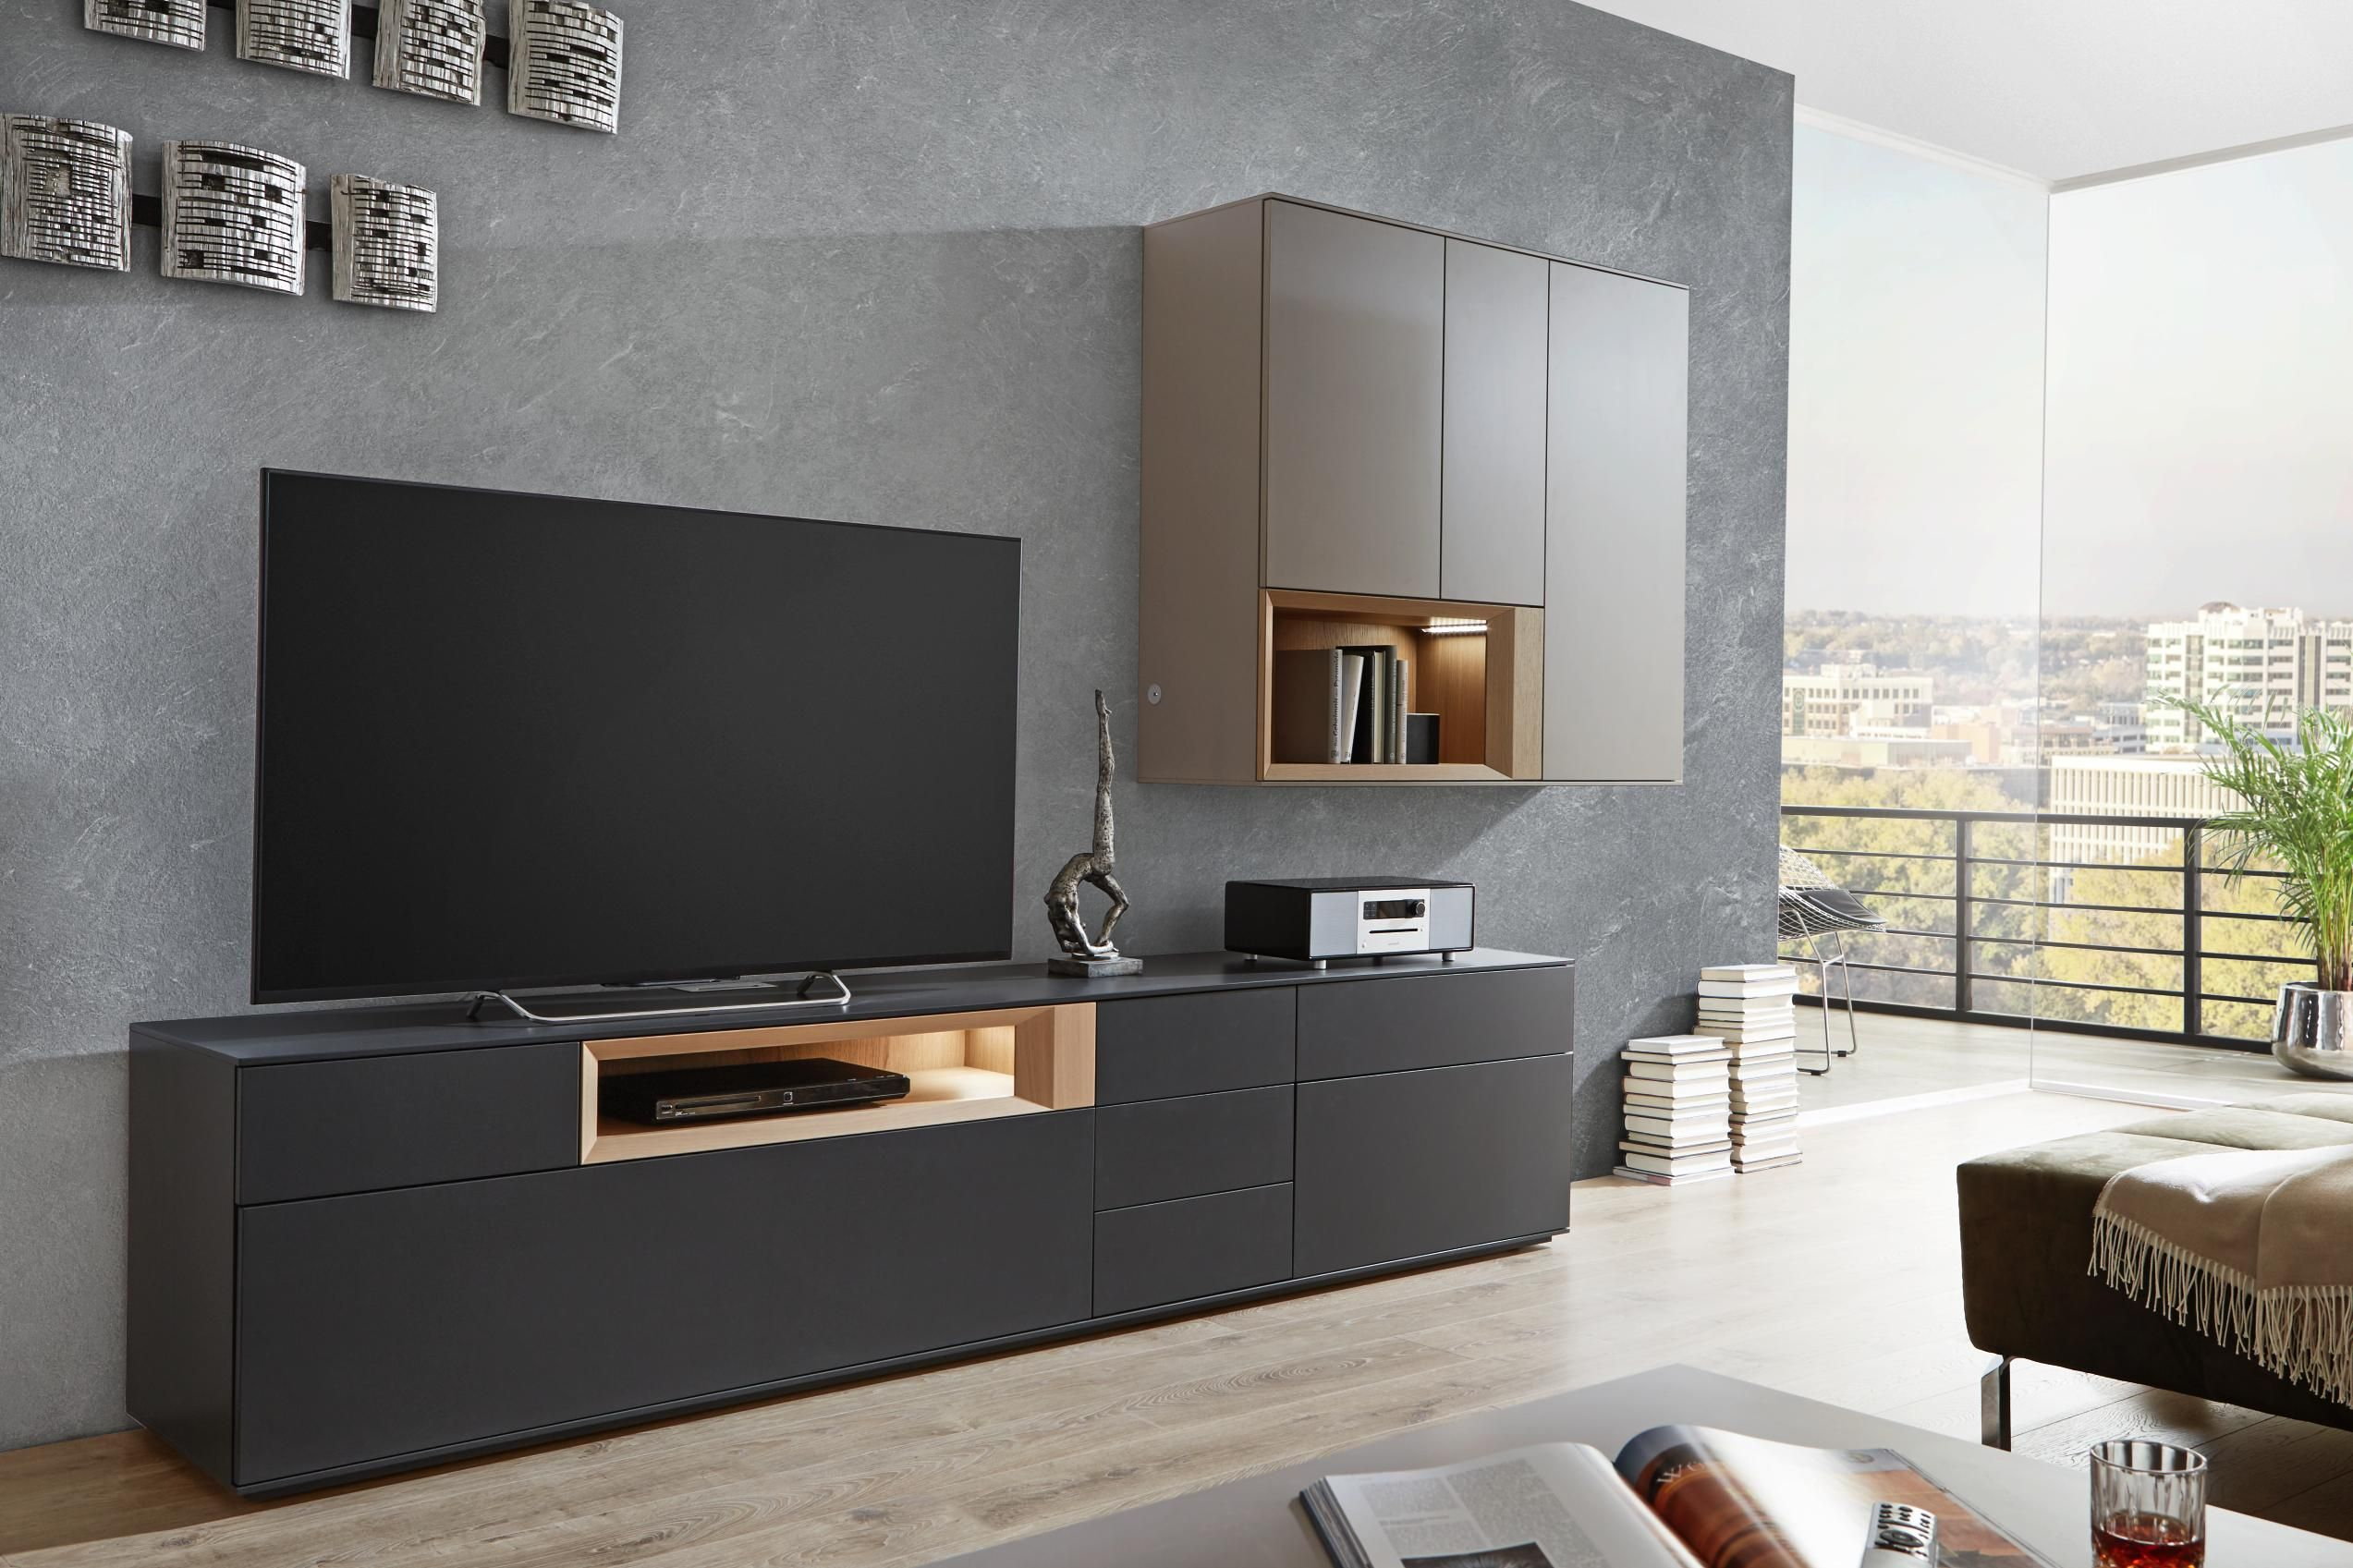 wohnwand in anthrazit eichefarben grau wohnw nde. Black Bedroom Furniture Sets. Home Design Ideas